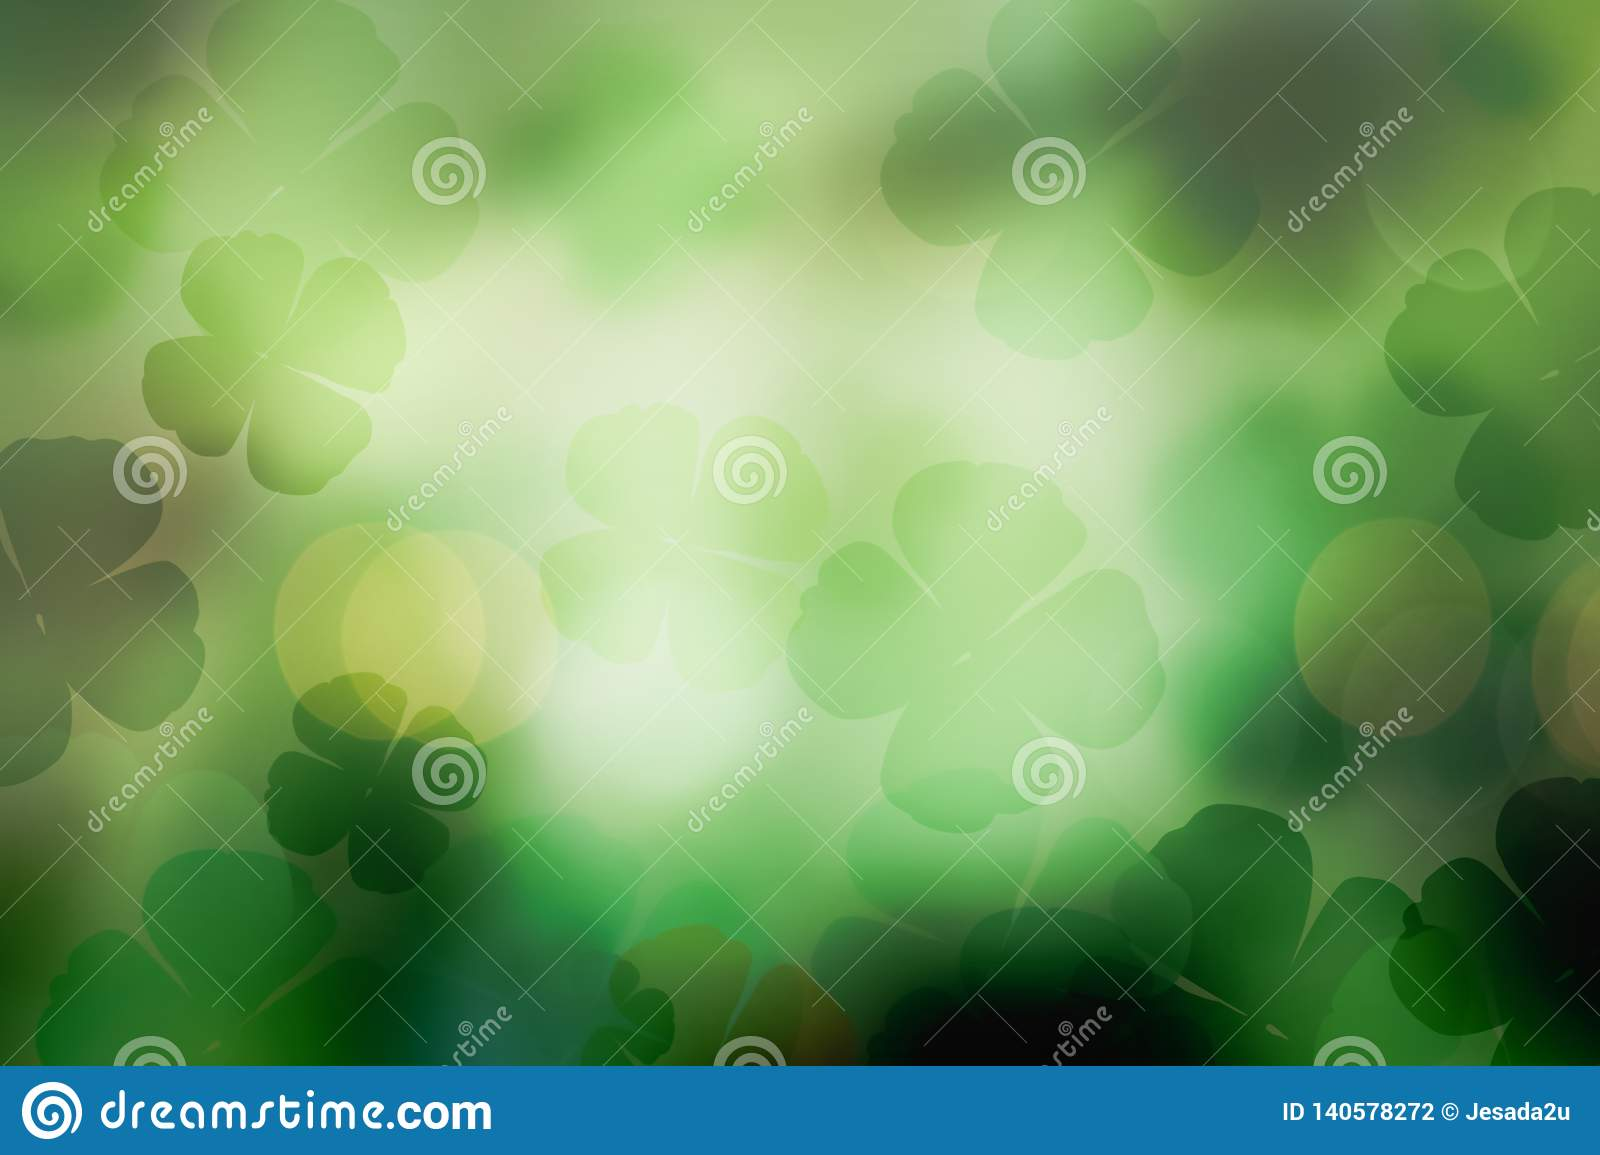 St. patrick`s day abstract green shamrock background for design